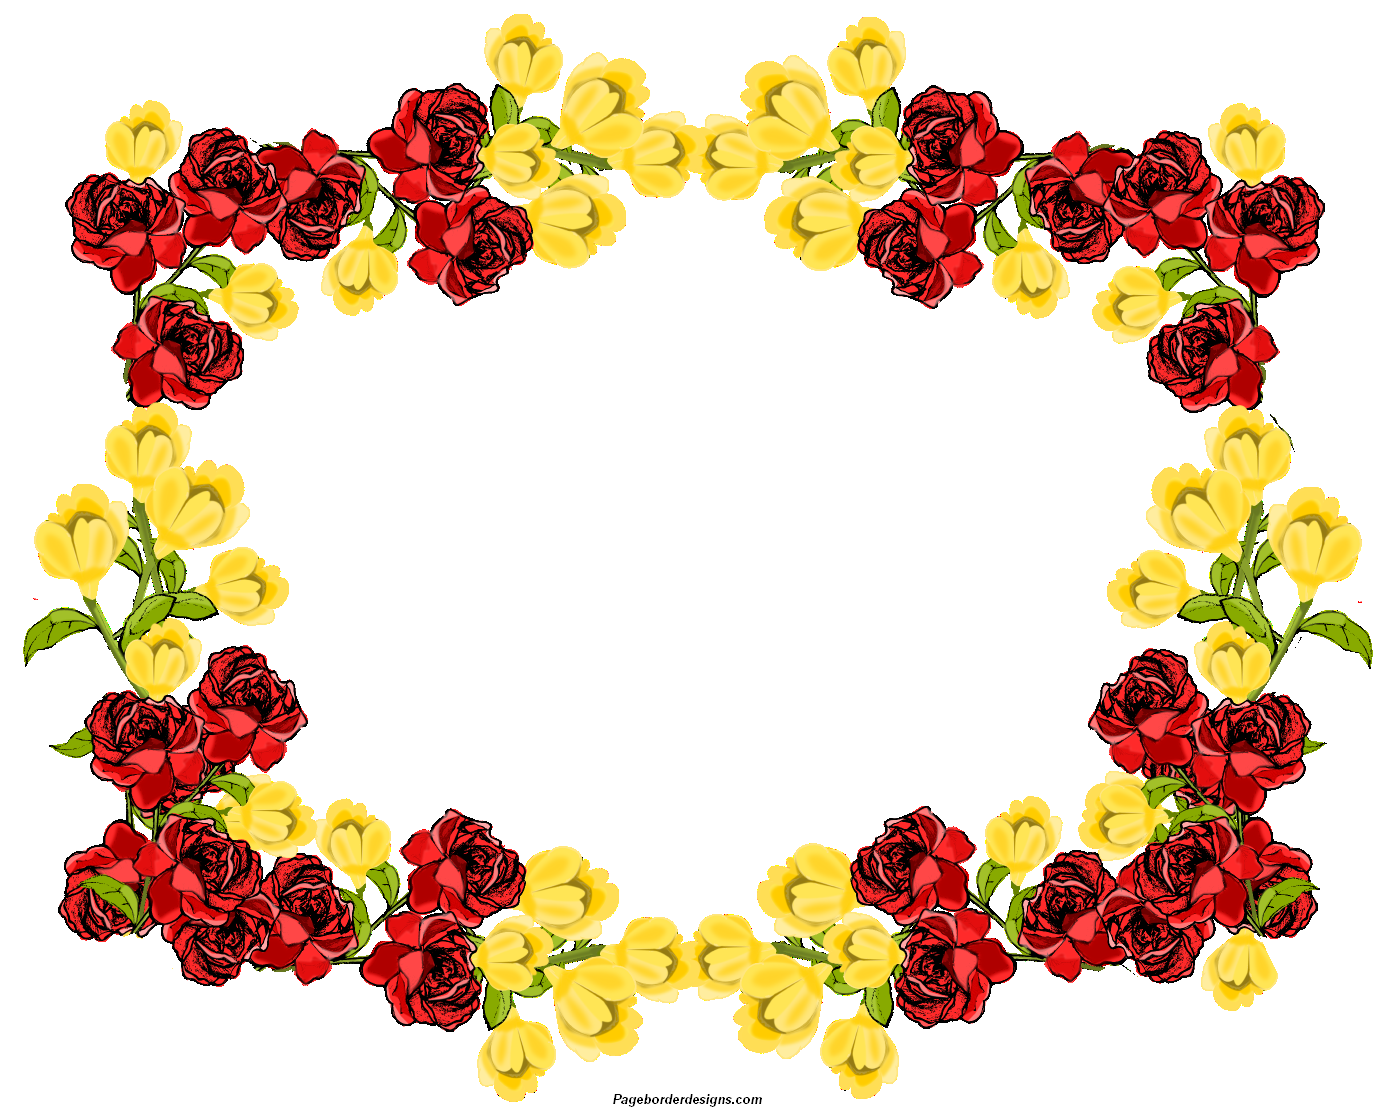 Red Apple Green and Yellow Border Clip Art.